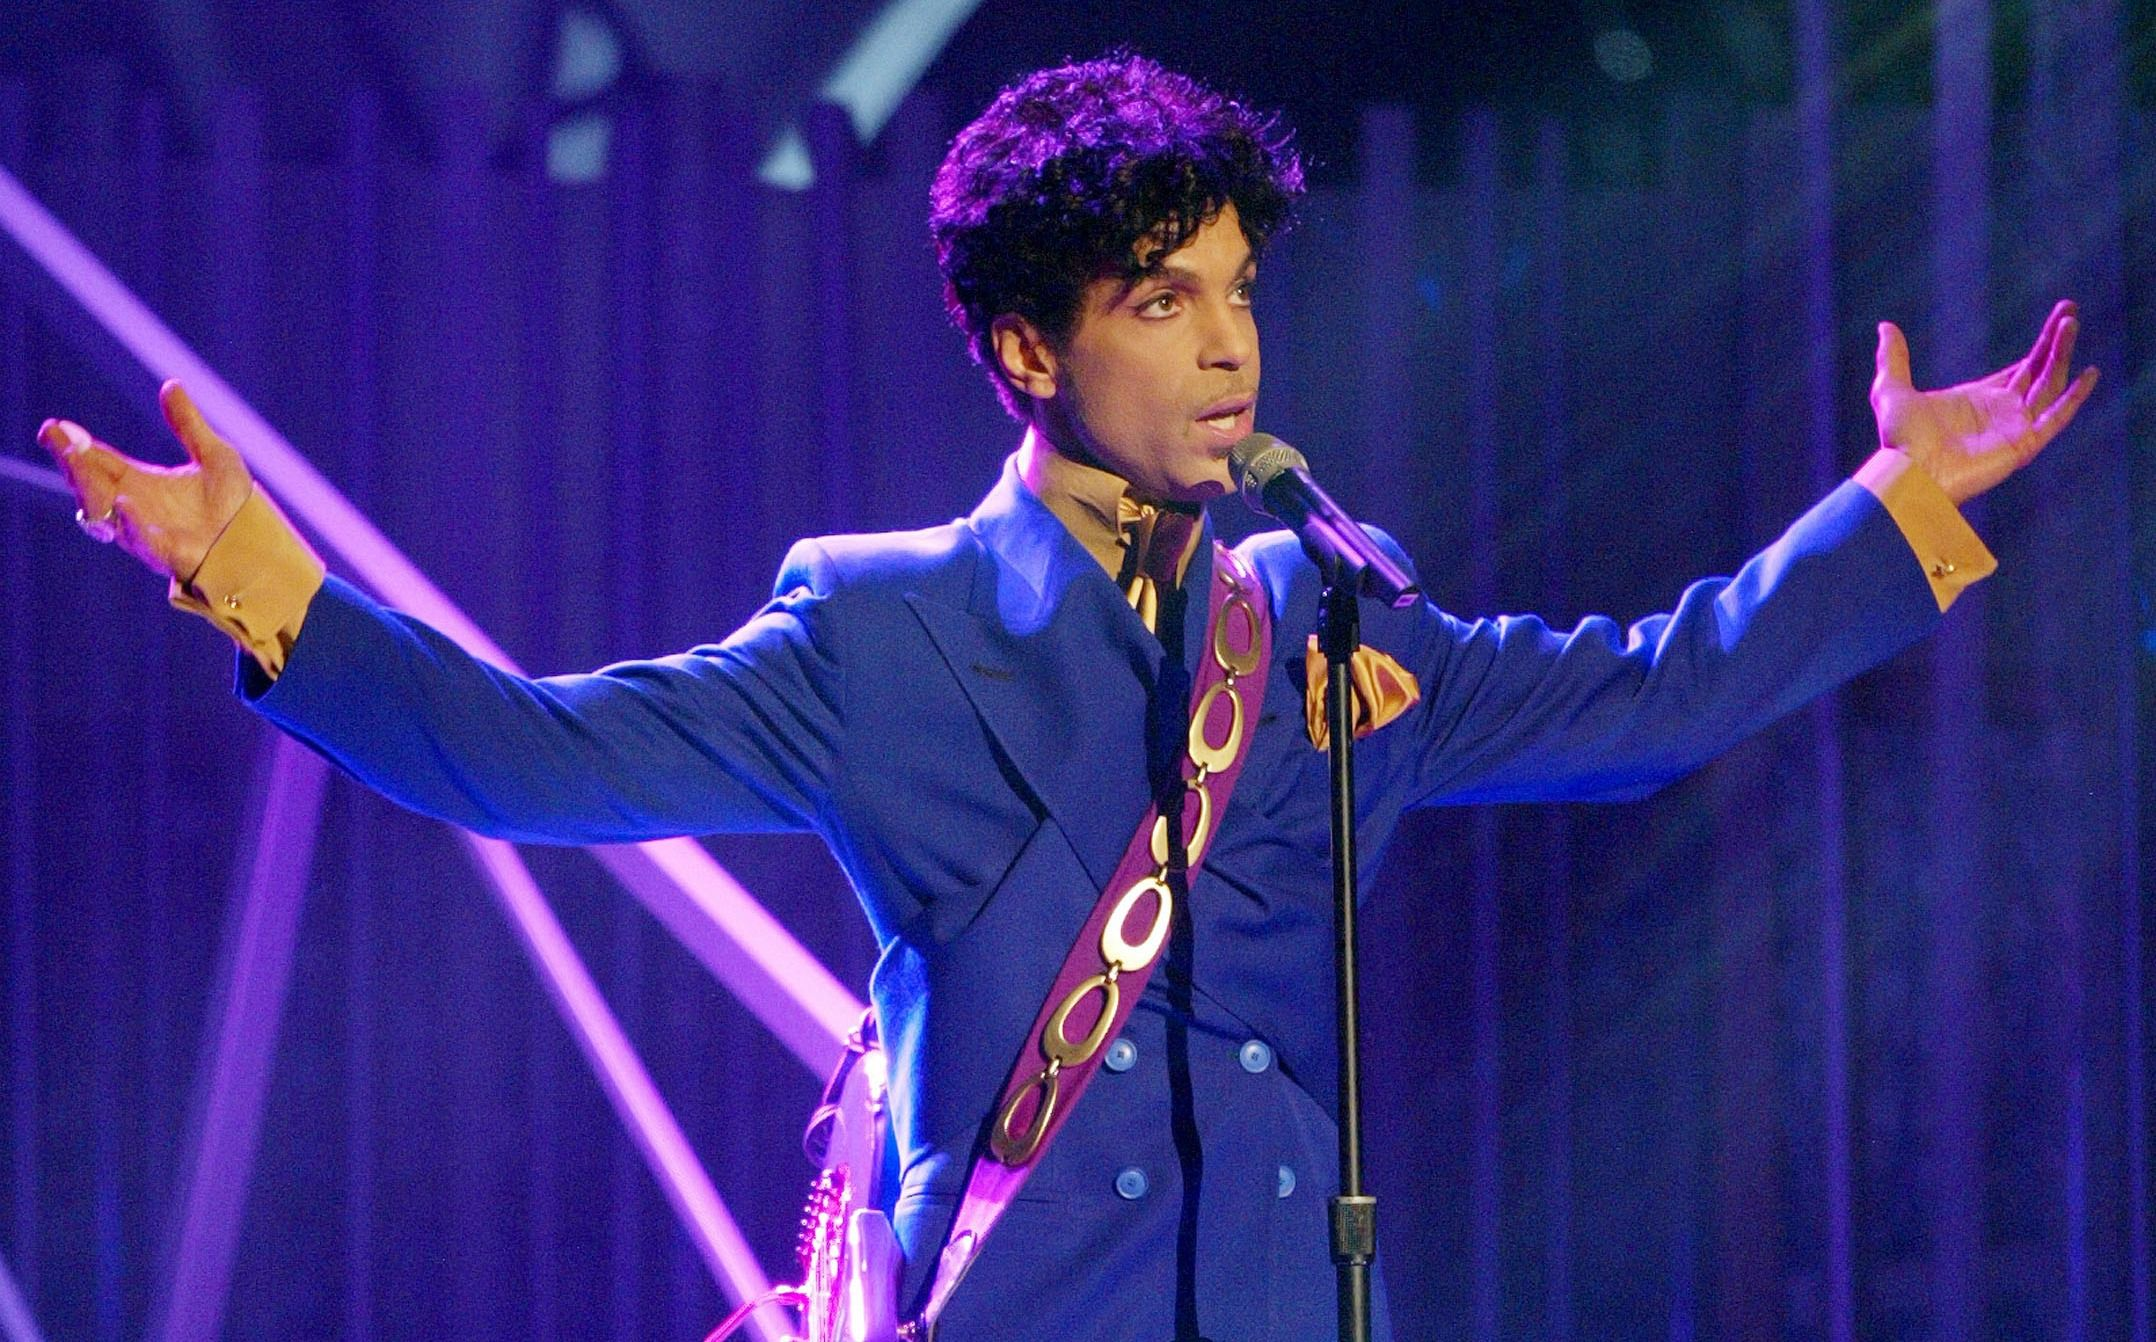 His Royal Purpleness: Prince at the 2009 Grammy awards.